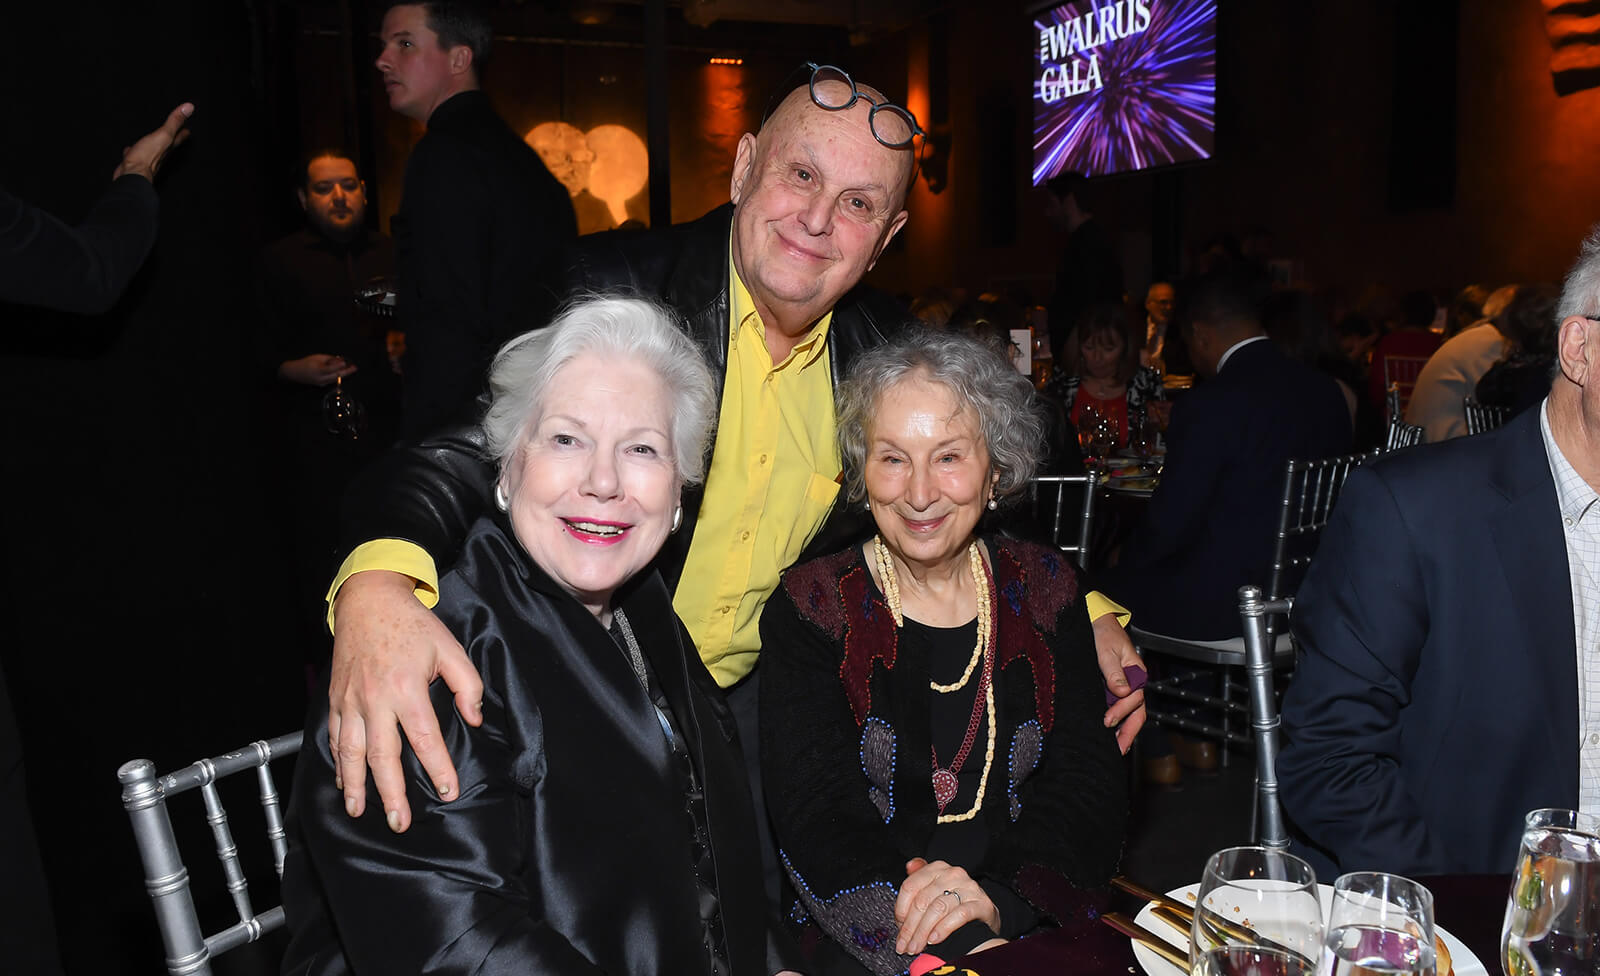 Margaret atwood at guests at the walrus gala